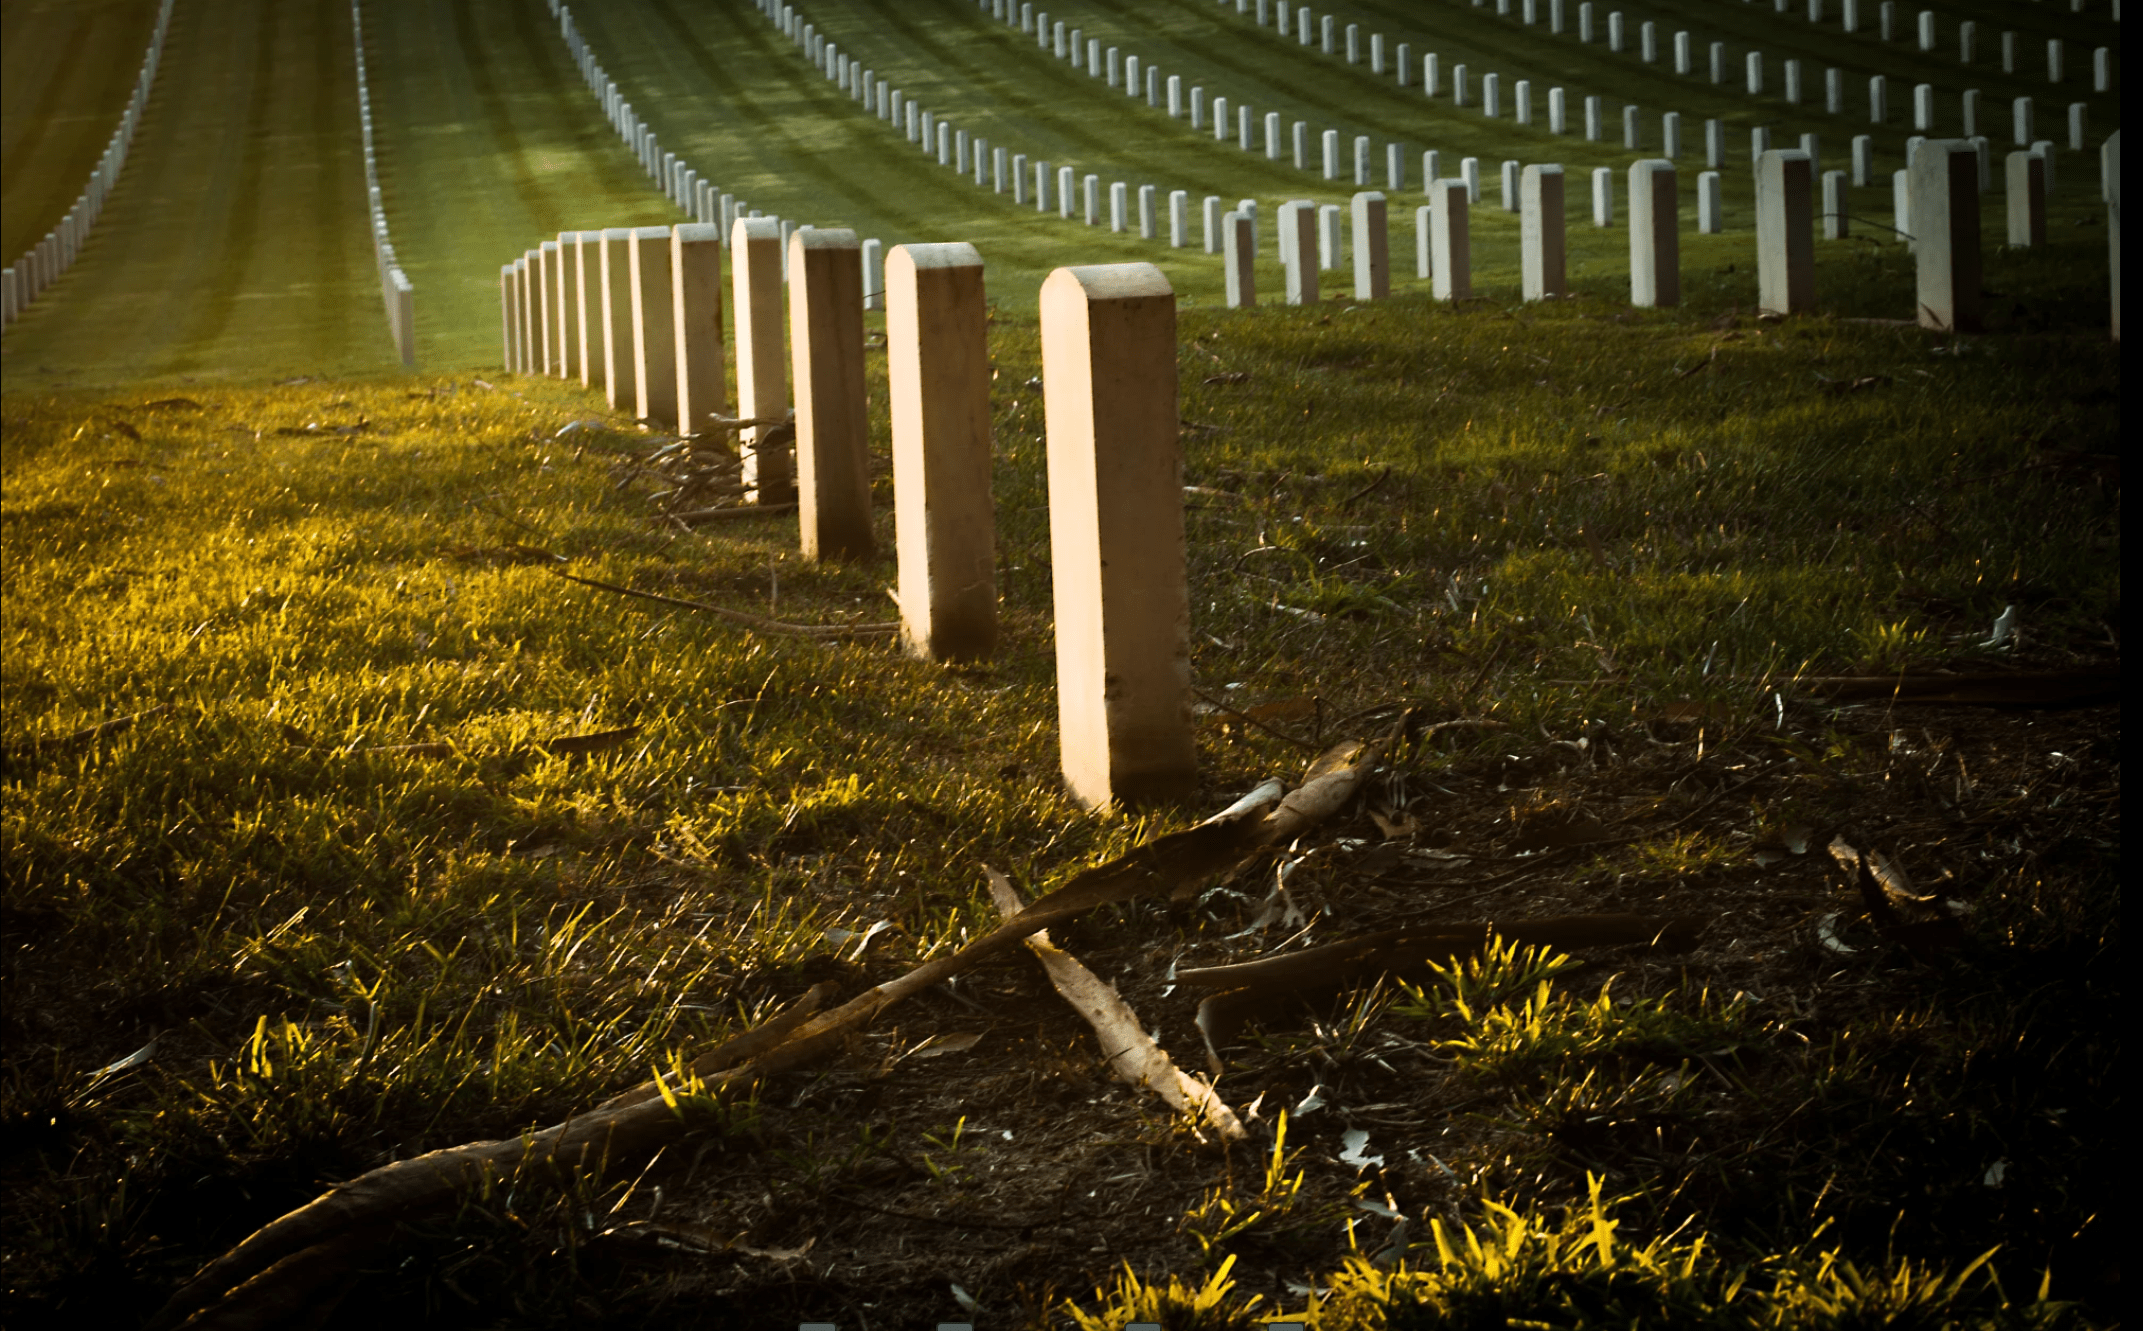 Headstone images